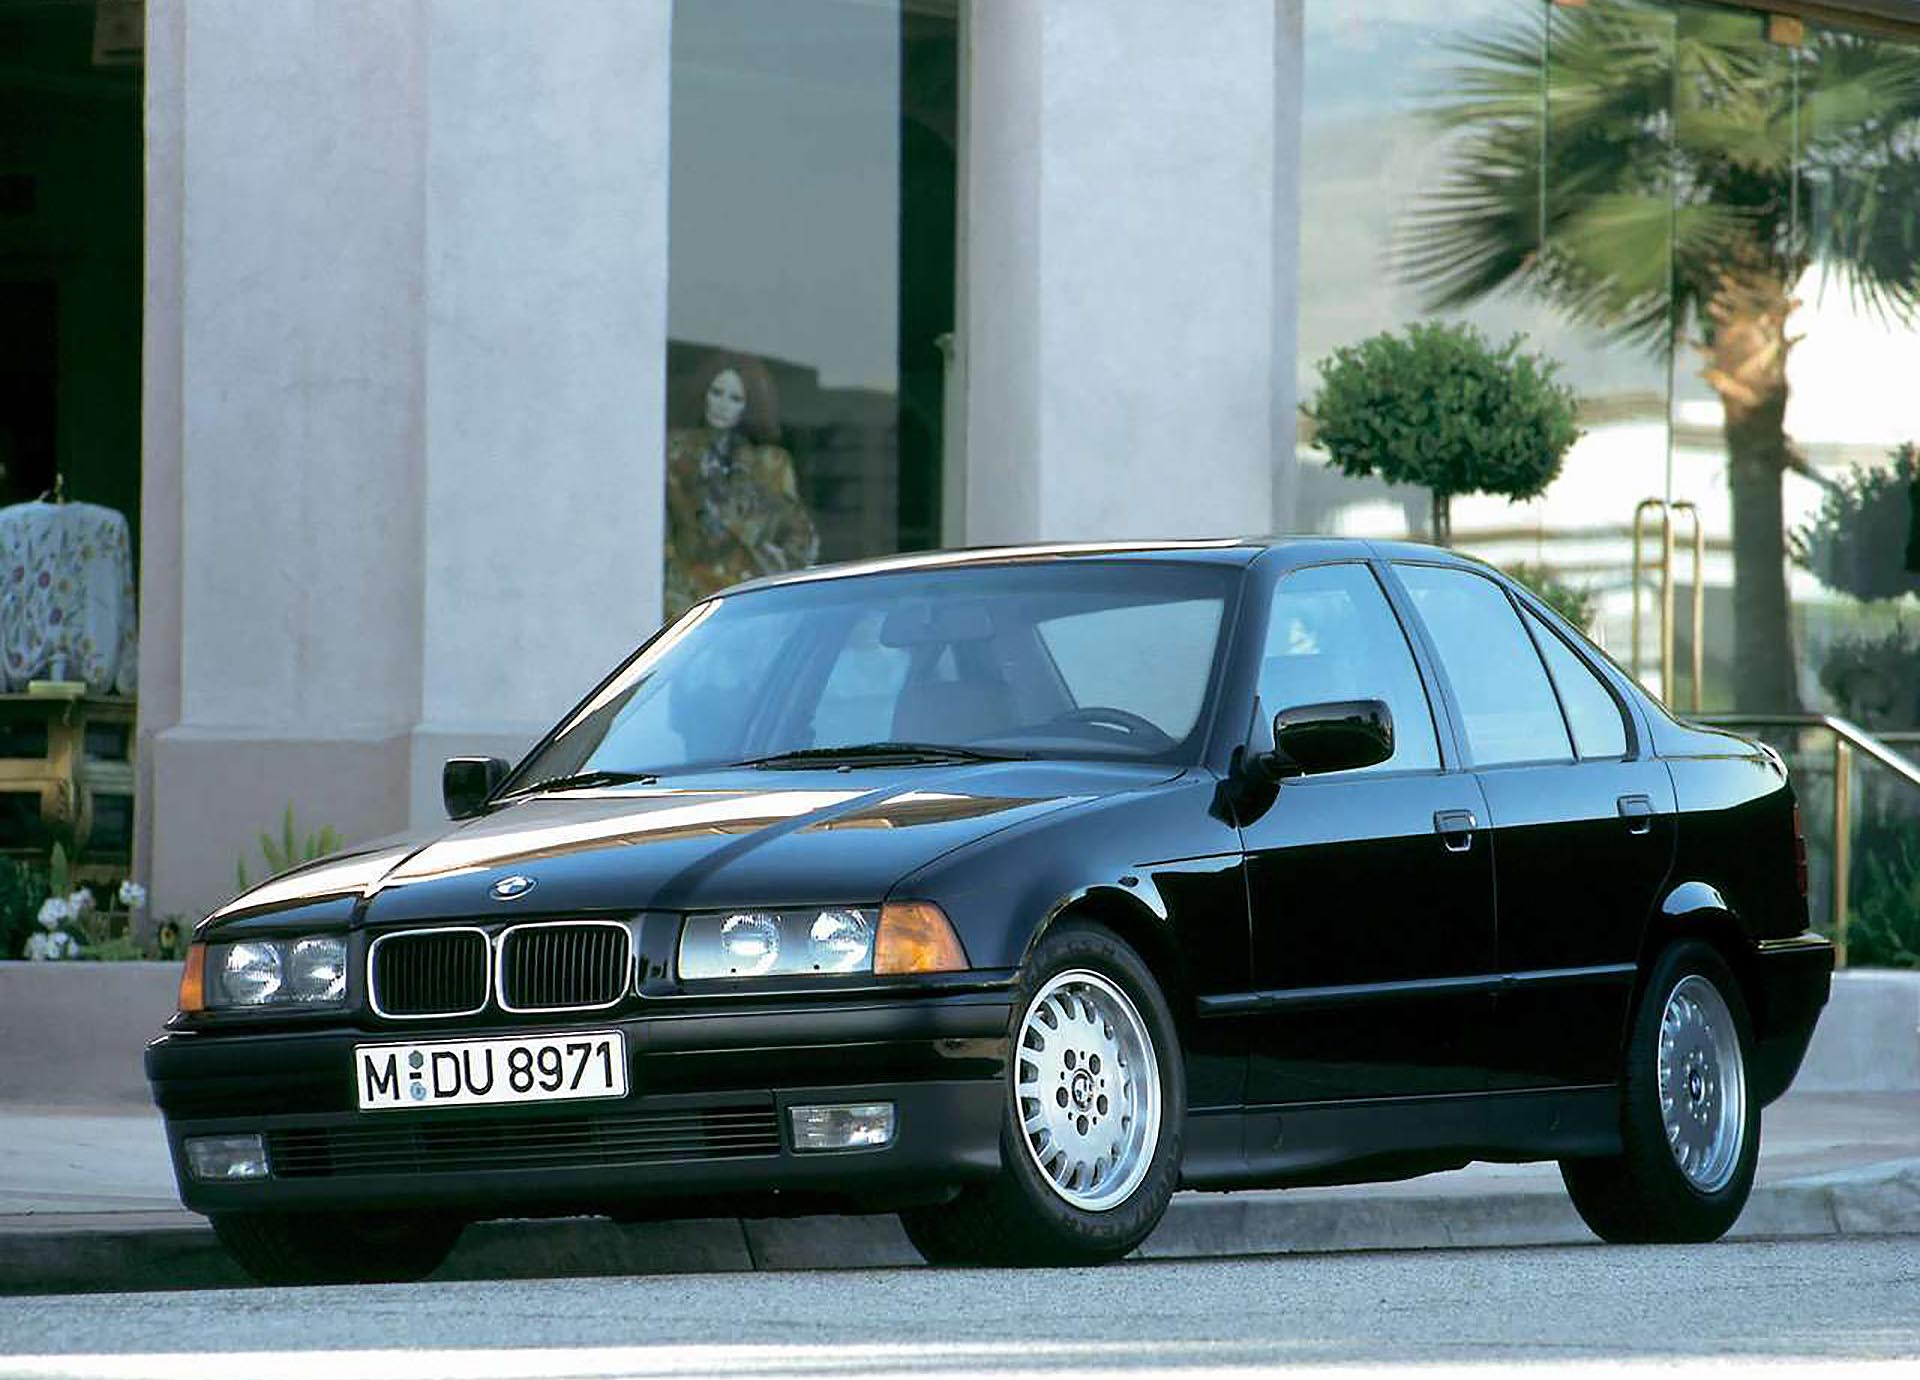 03_BMW E36 325iS front